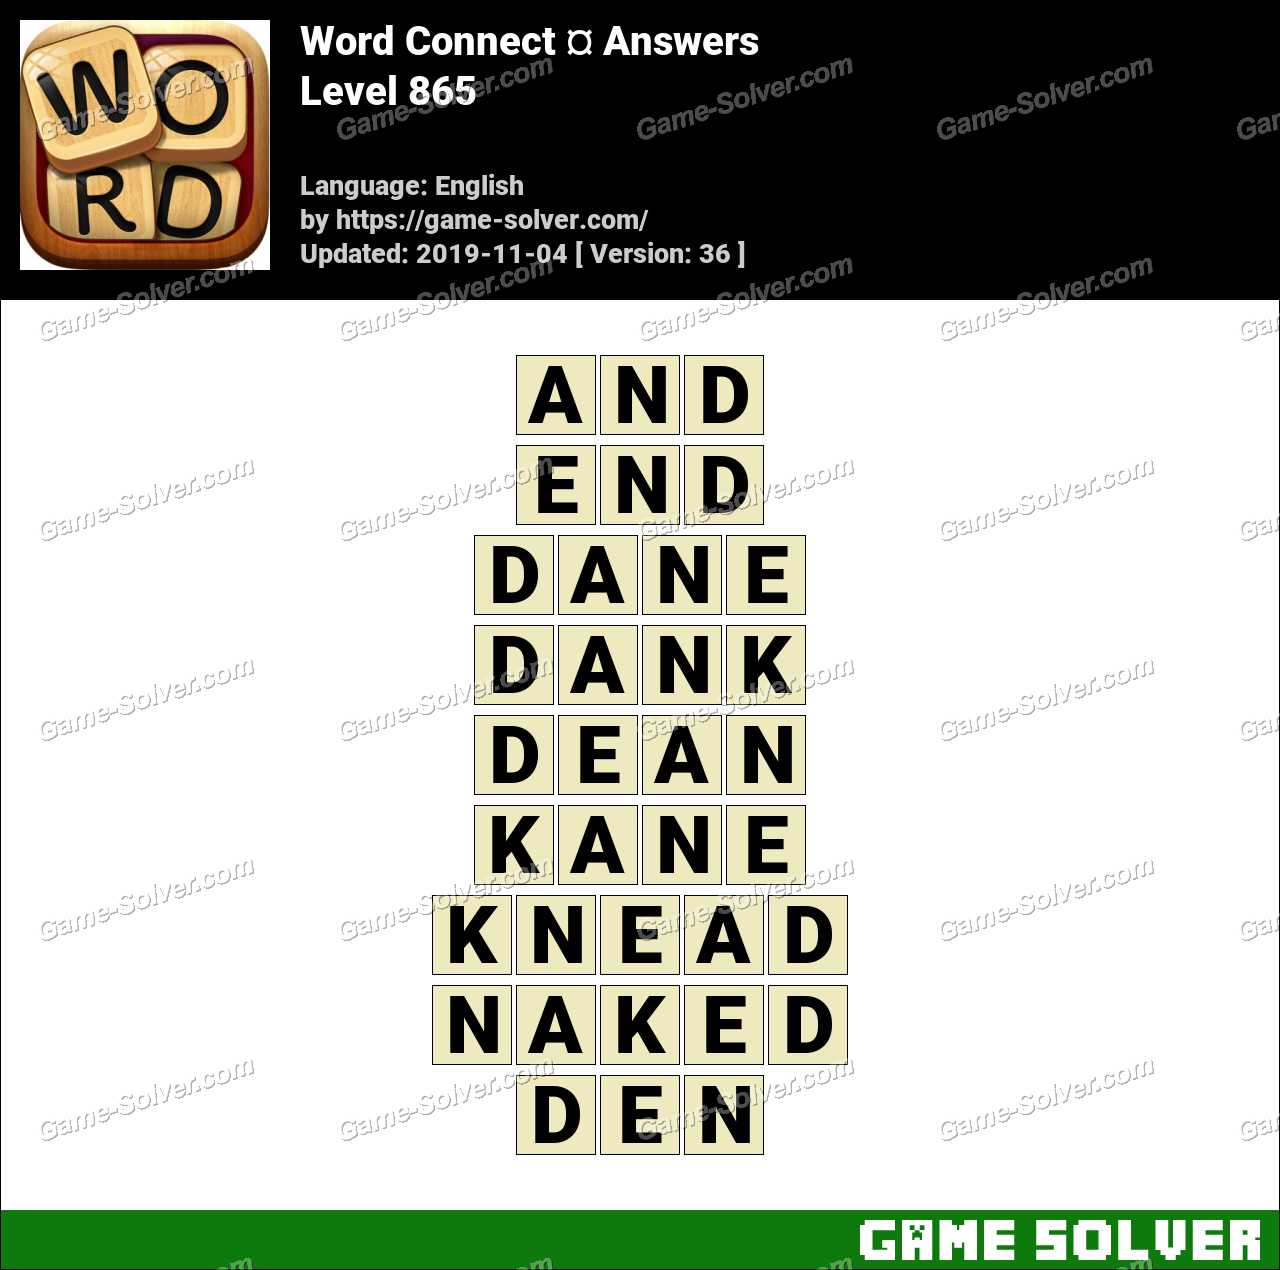 Word Connect Level 865 Answers